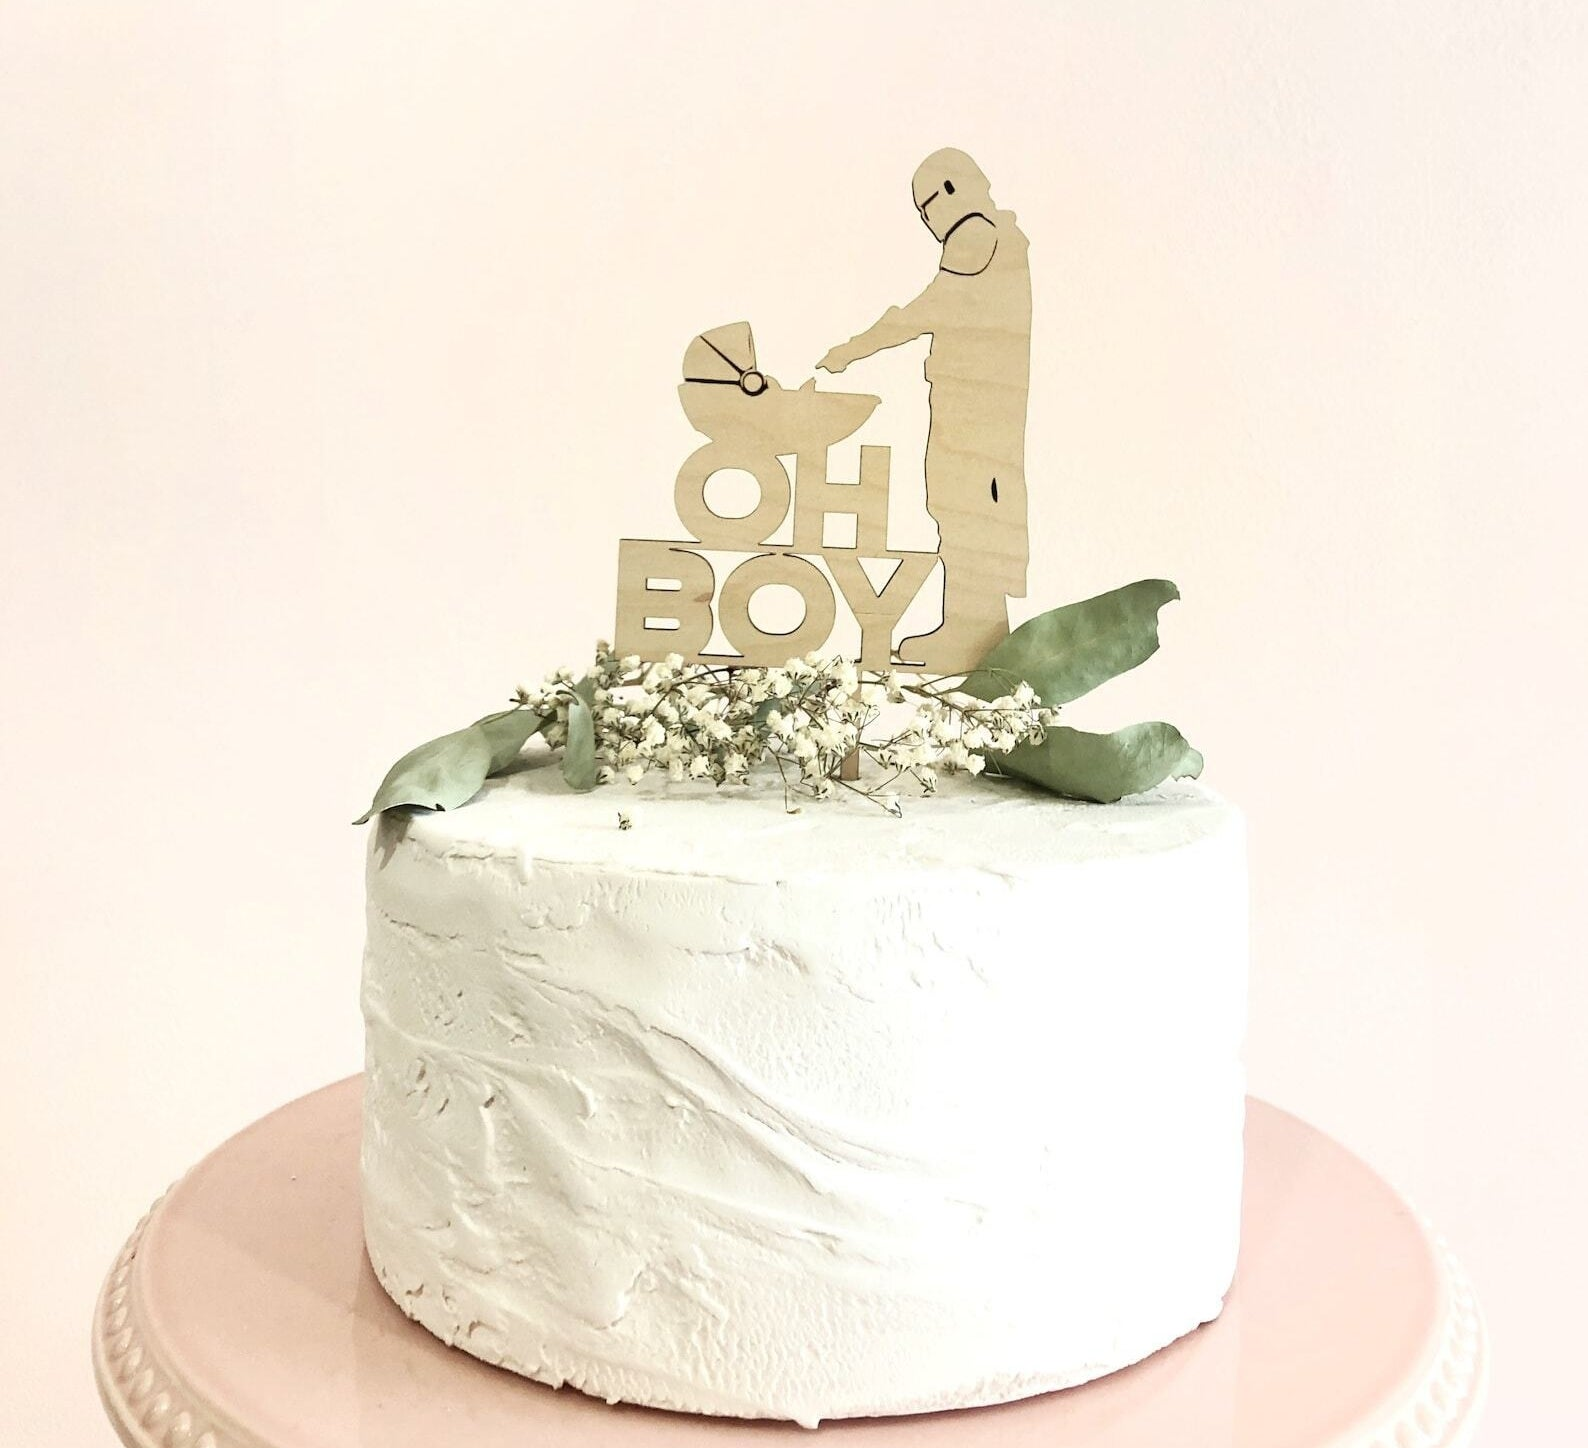 frosted cake with the child and the mandelorian cake topper that says oh boy